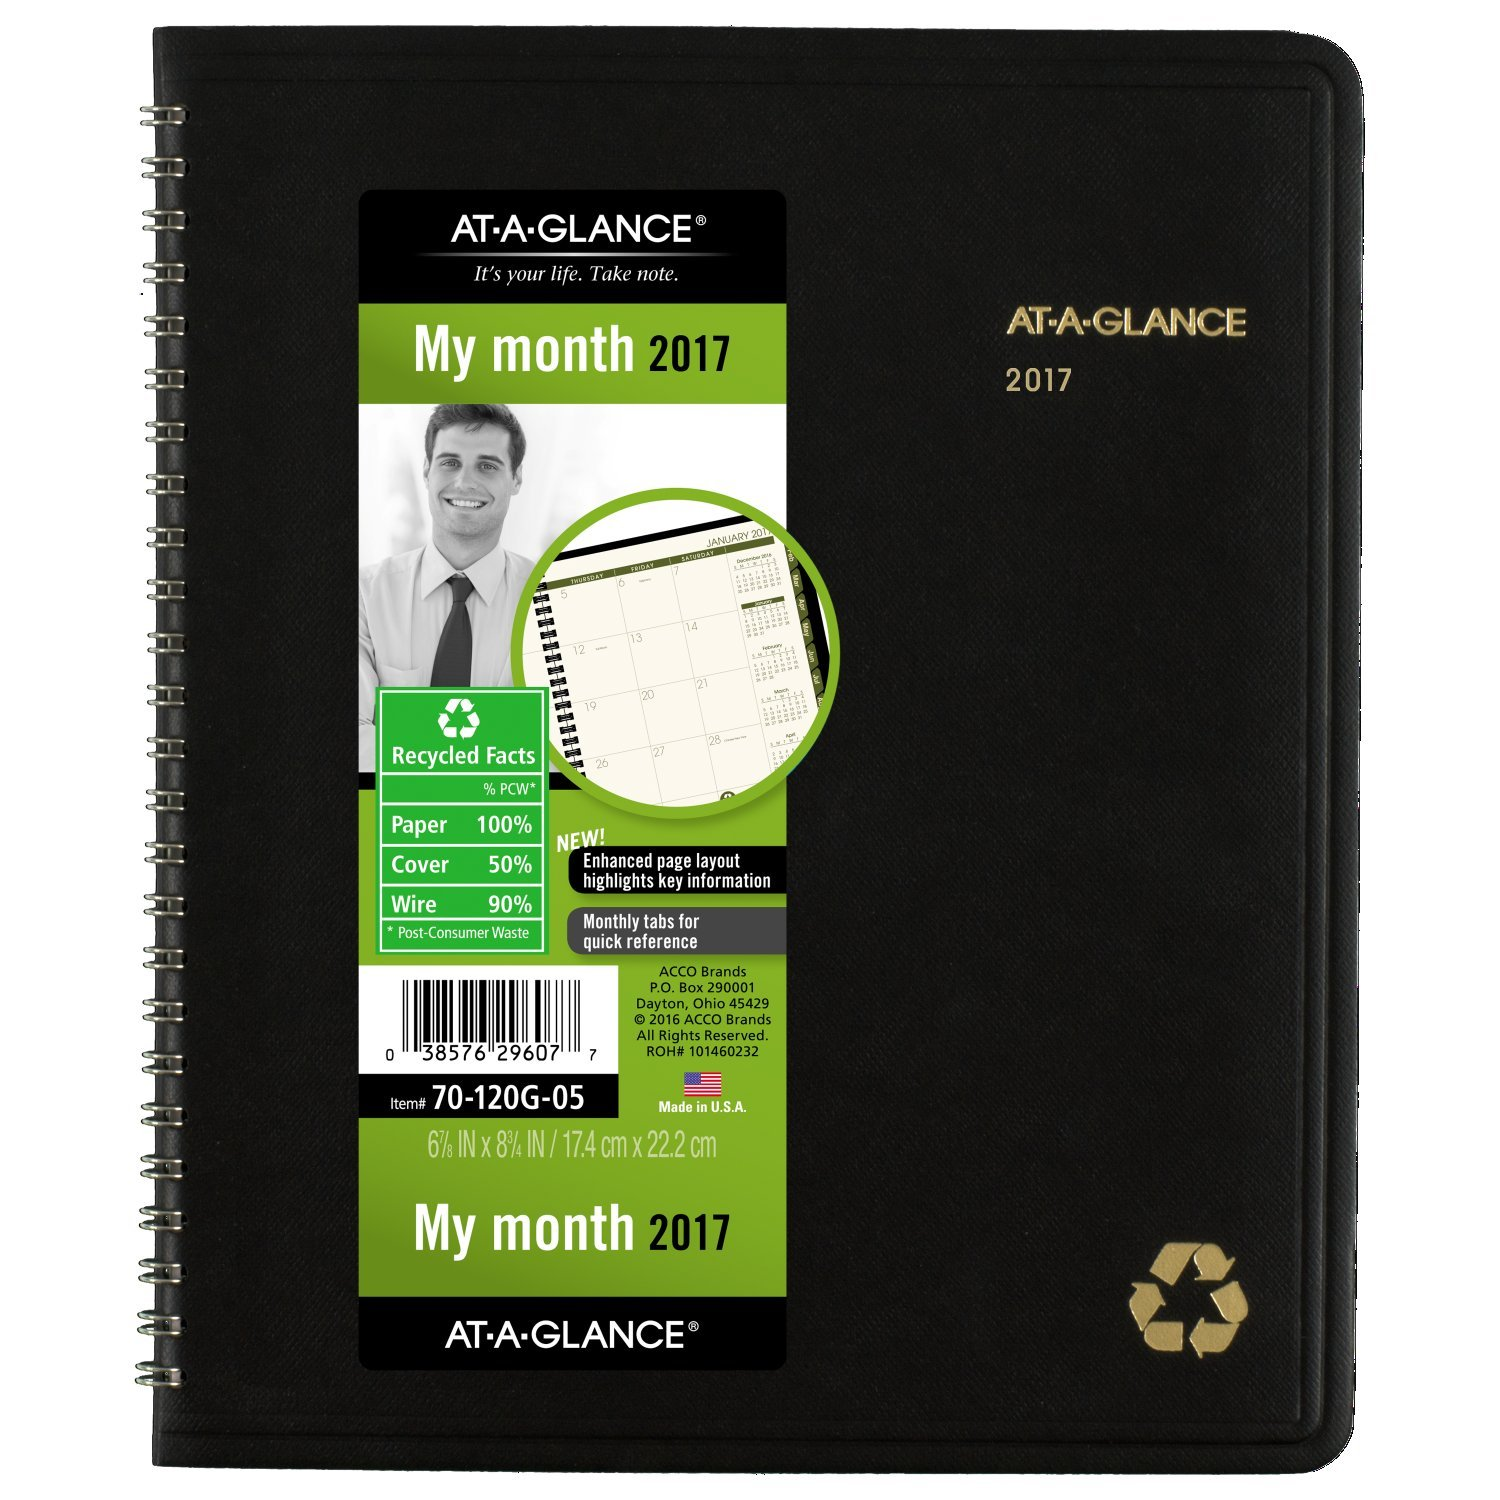 AT-A-GLANCE Monthly Planner / Appointment Book 2017, Recycled, 6-7/8 x 8-3/4'', Black (70-120G-05)